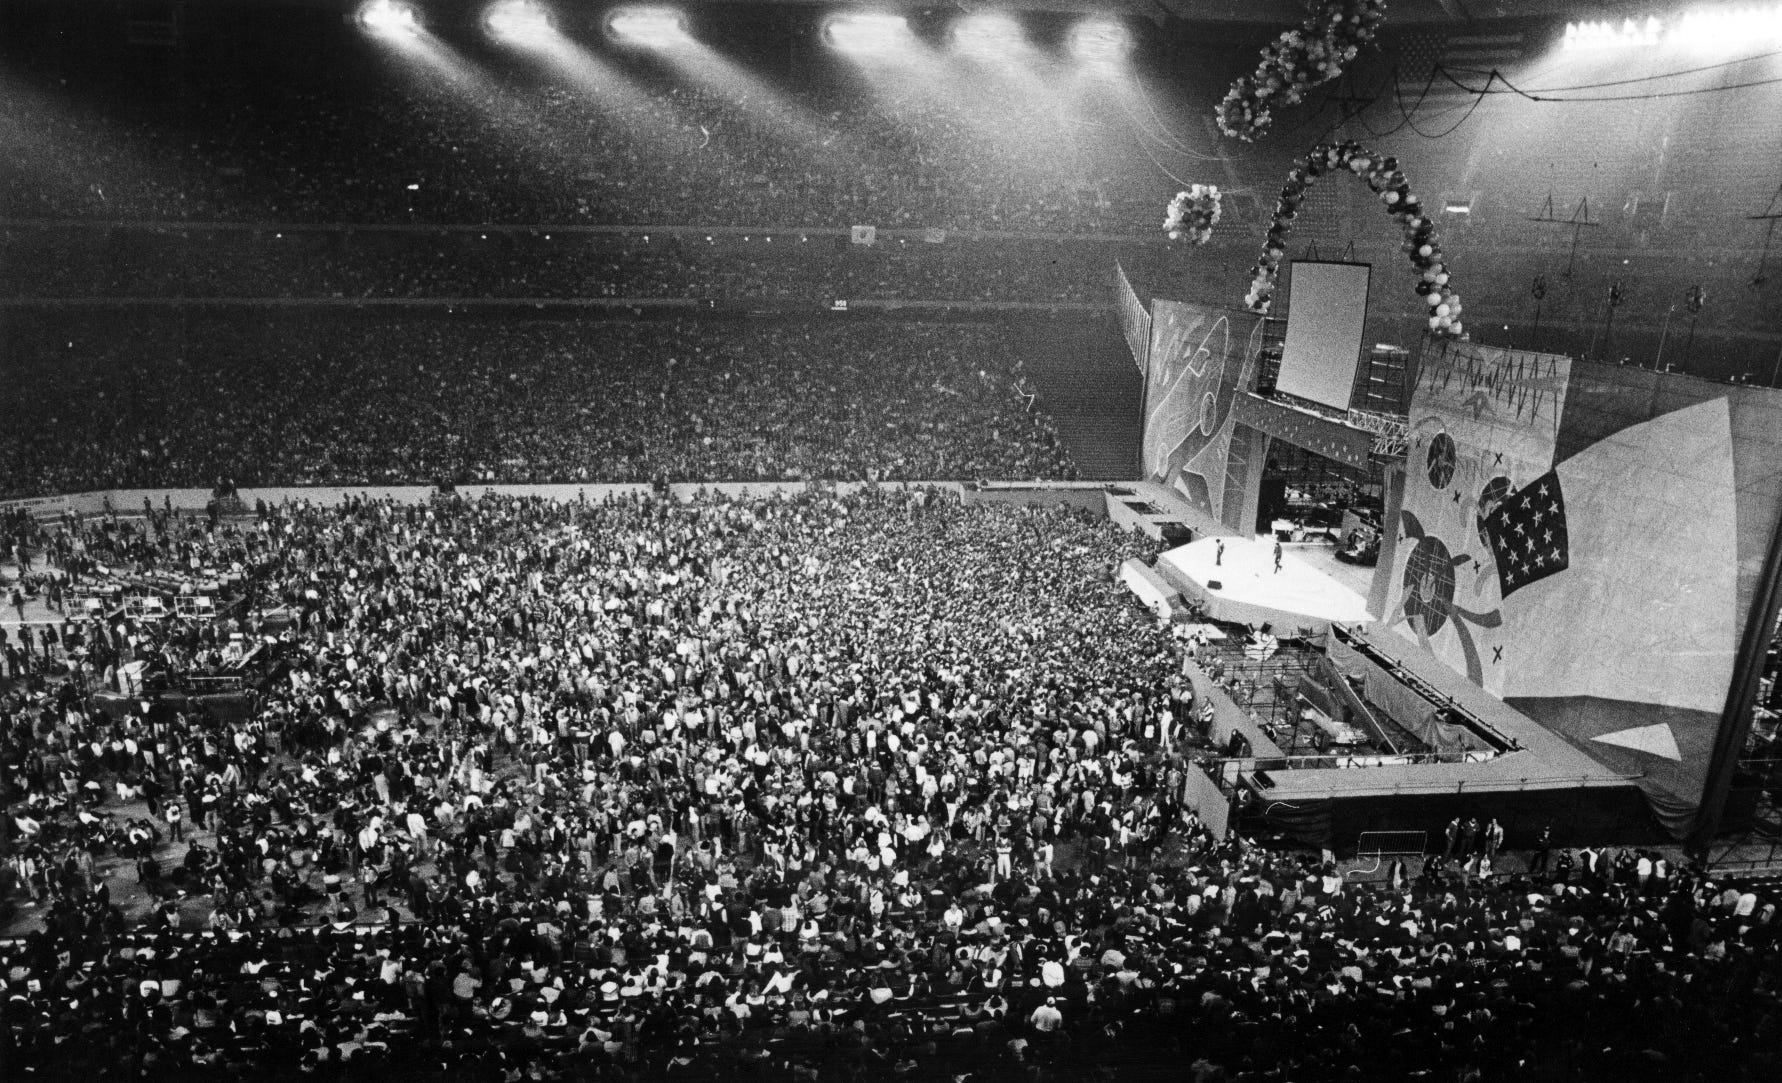 The Silverdome is packed for a Rolling Stones concert